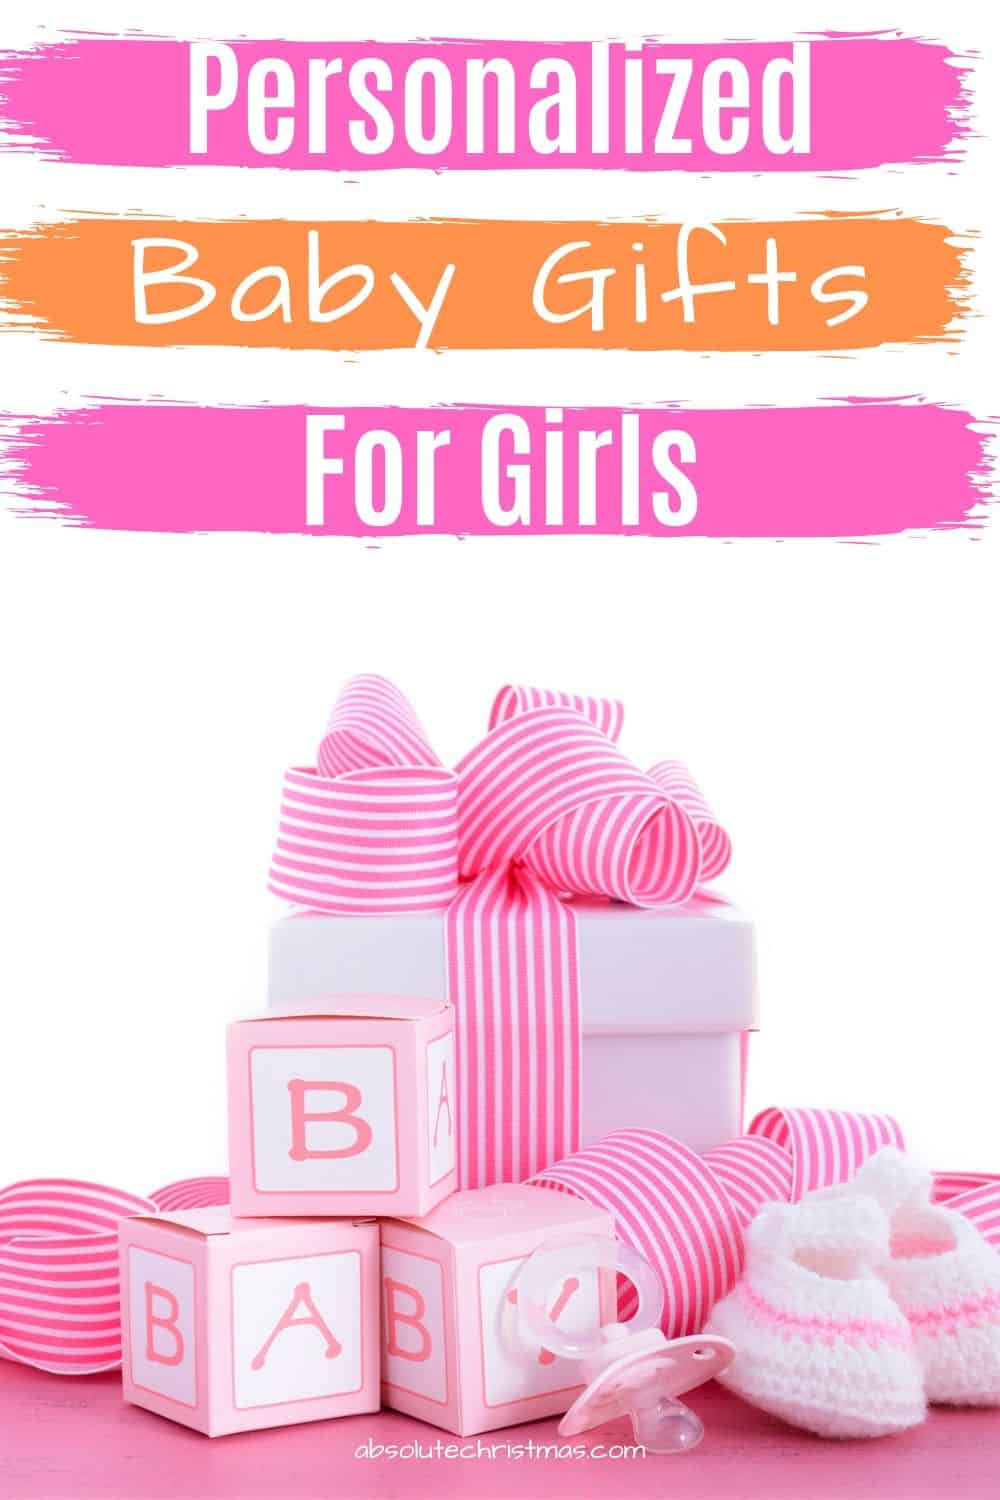 Personalized Baby Gifts for Girls - Baby Girl Gift Ideas